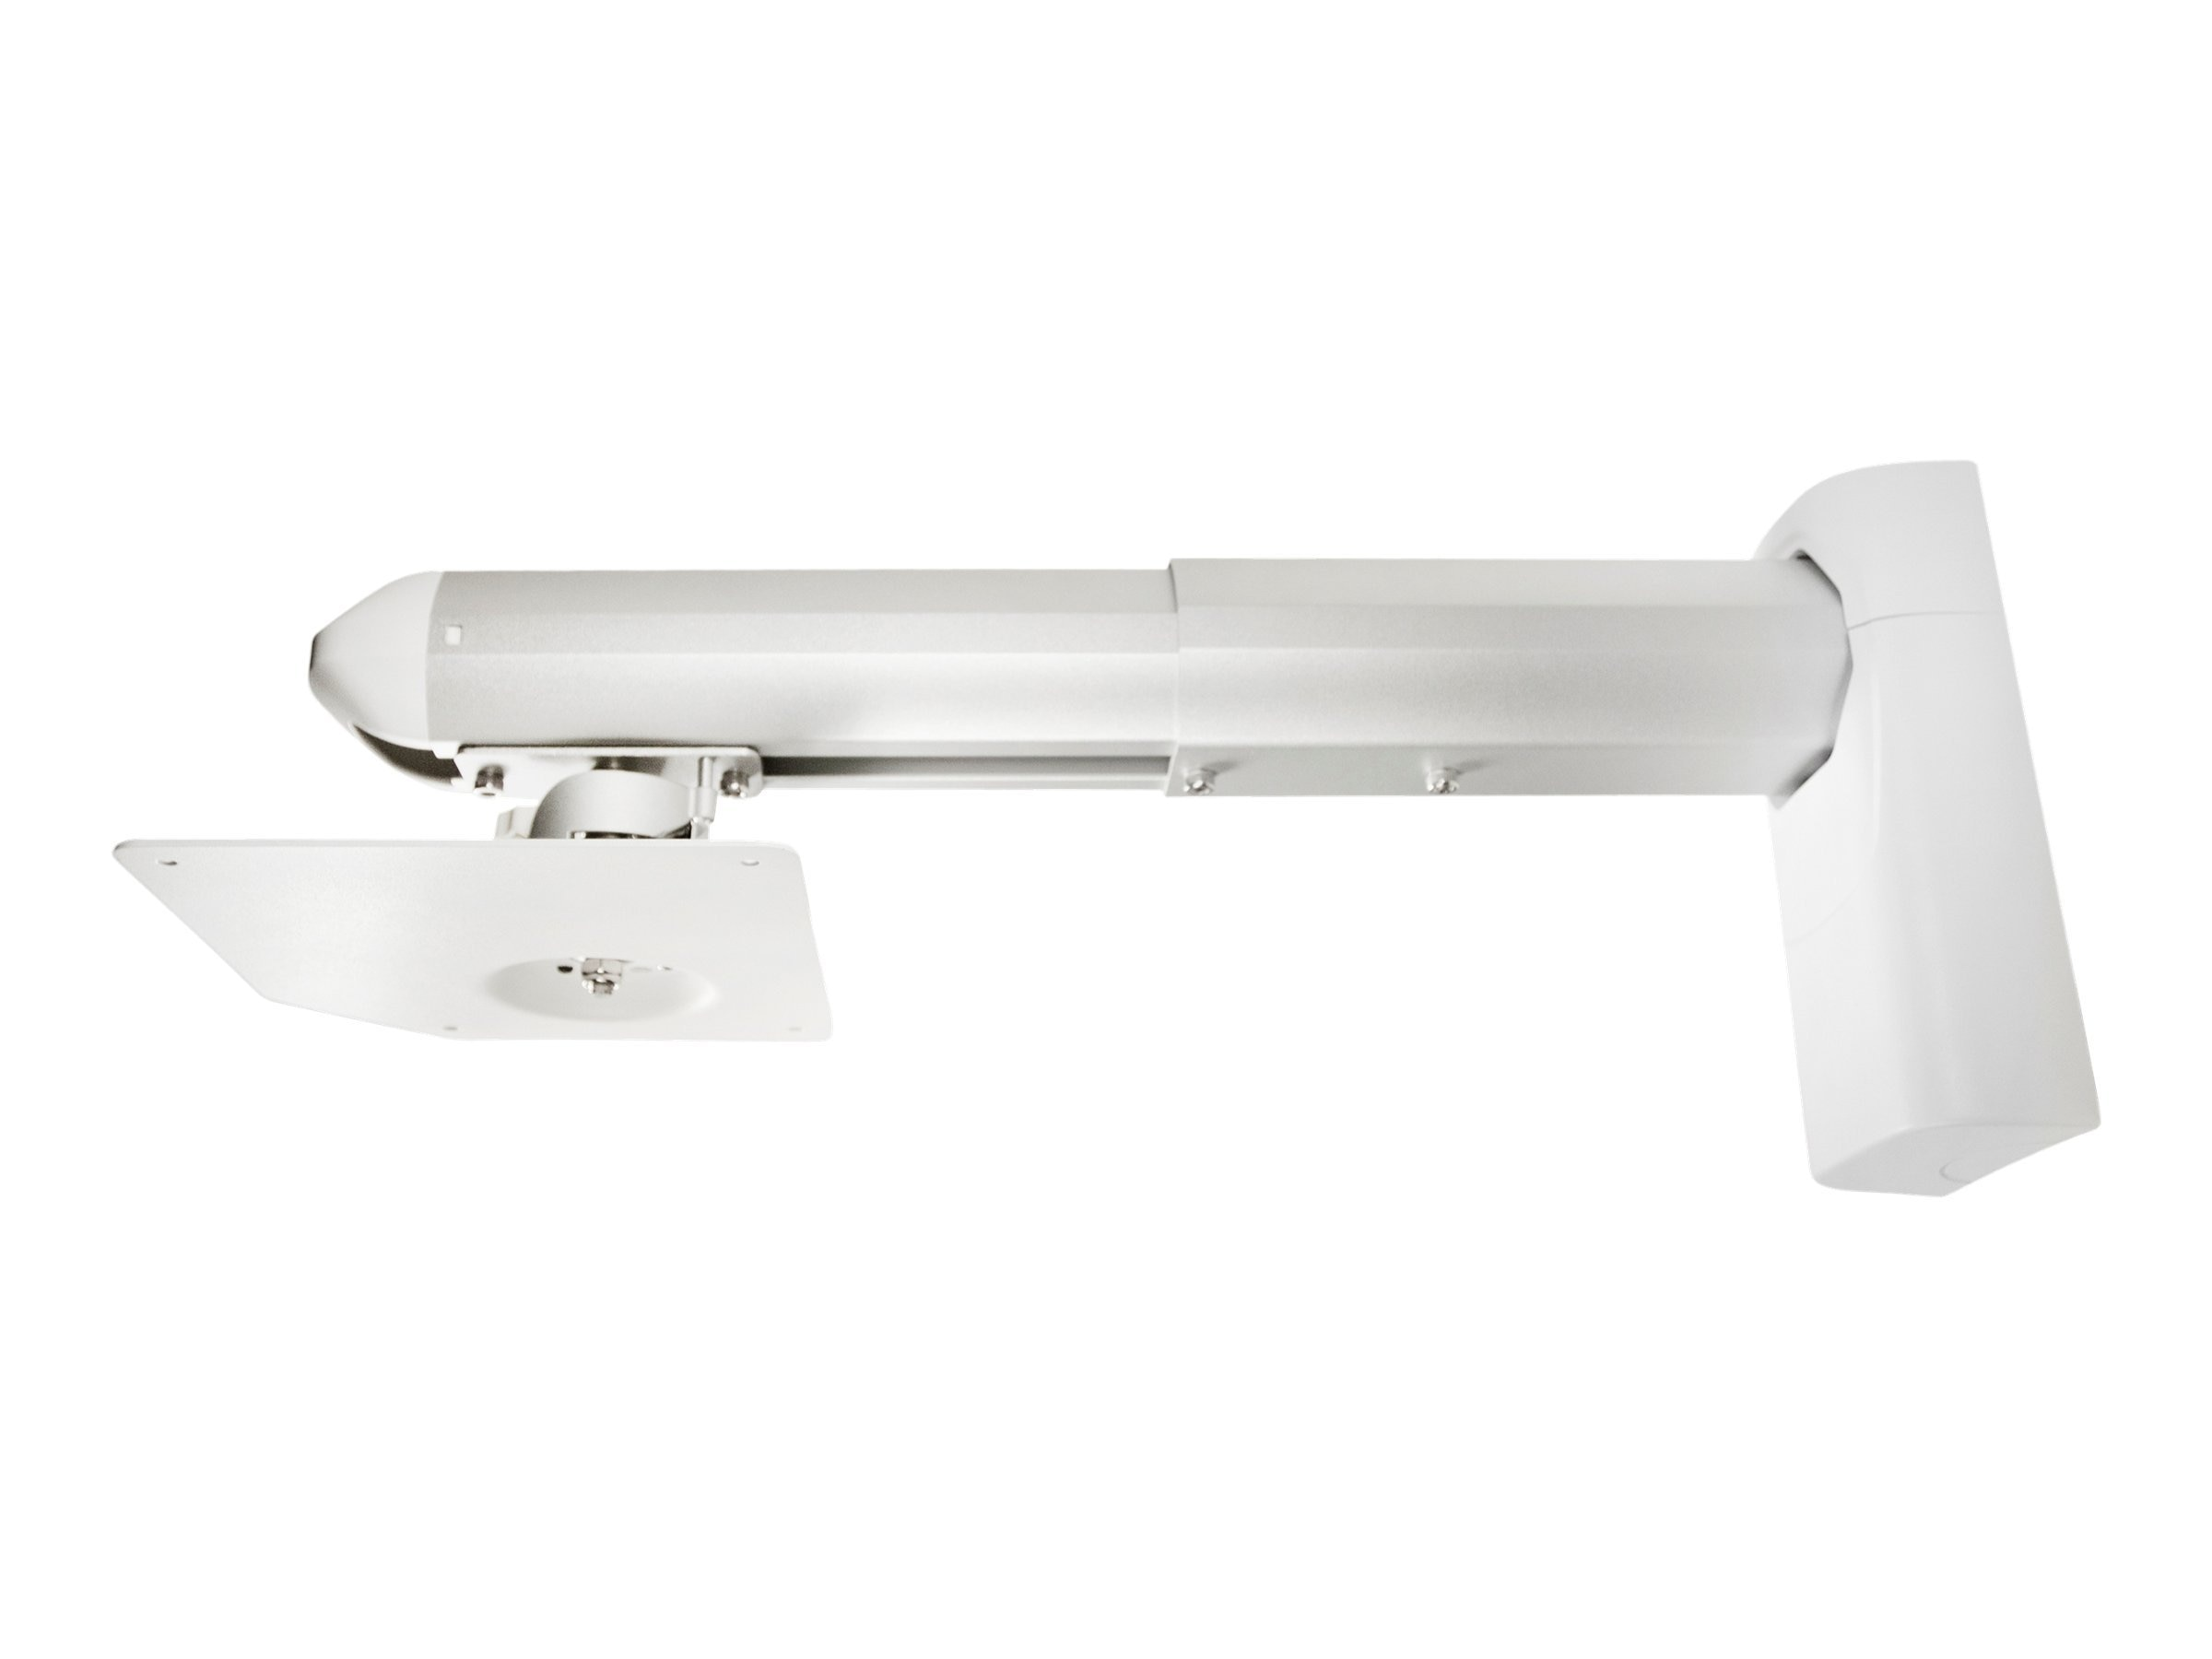 Optoma Single Stud, Telescoping Wall Mount for Ultra Short-Throw Projector